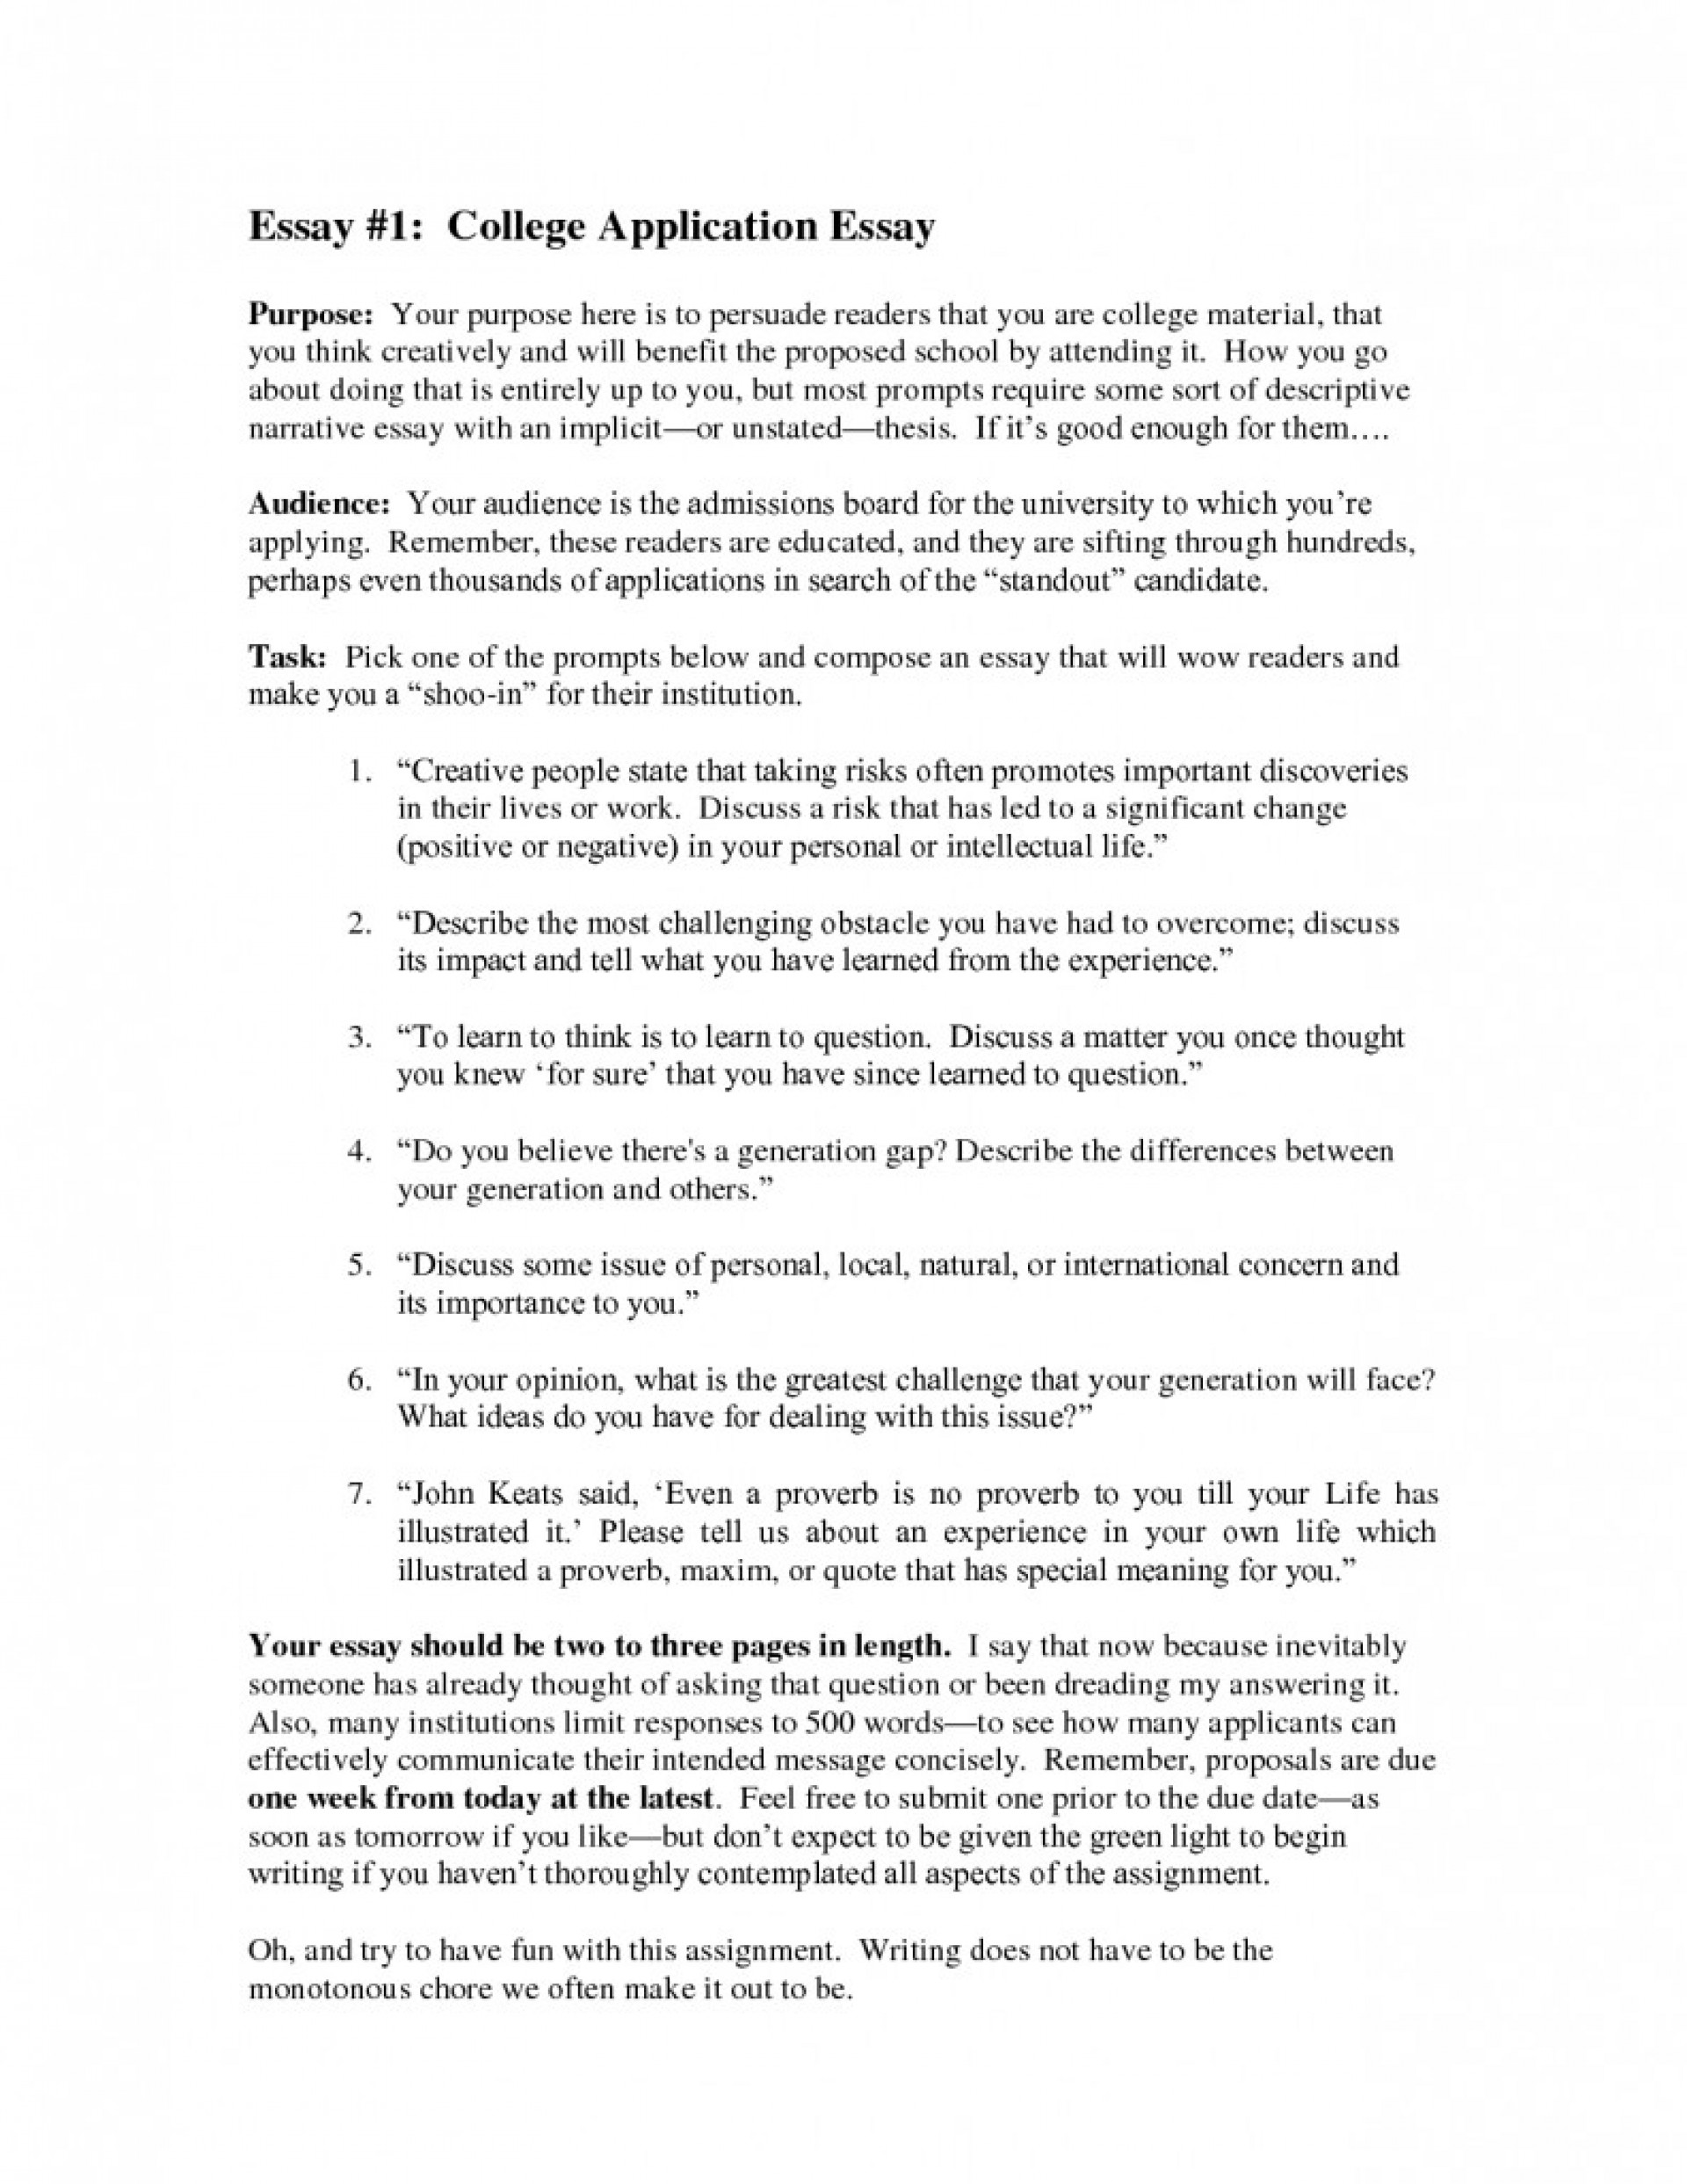 003 Essay Example College Application 791x1024 Life Formidable Lesson Valuable My Life's Greatest Ideas 1920